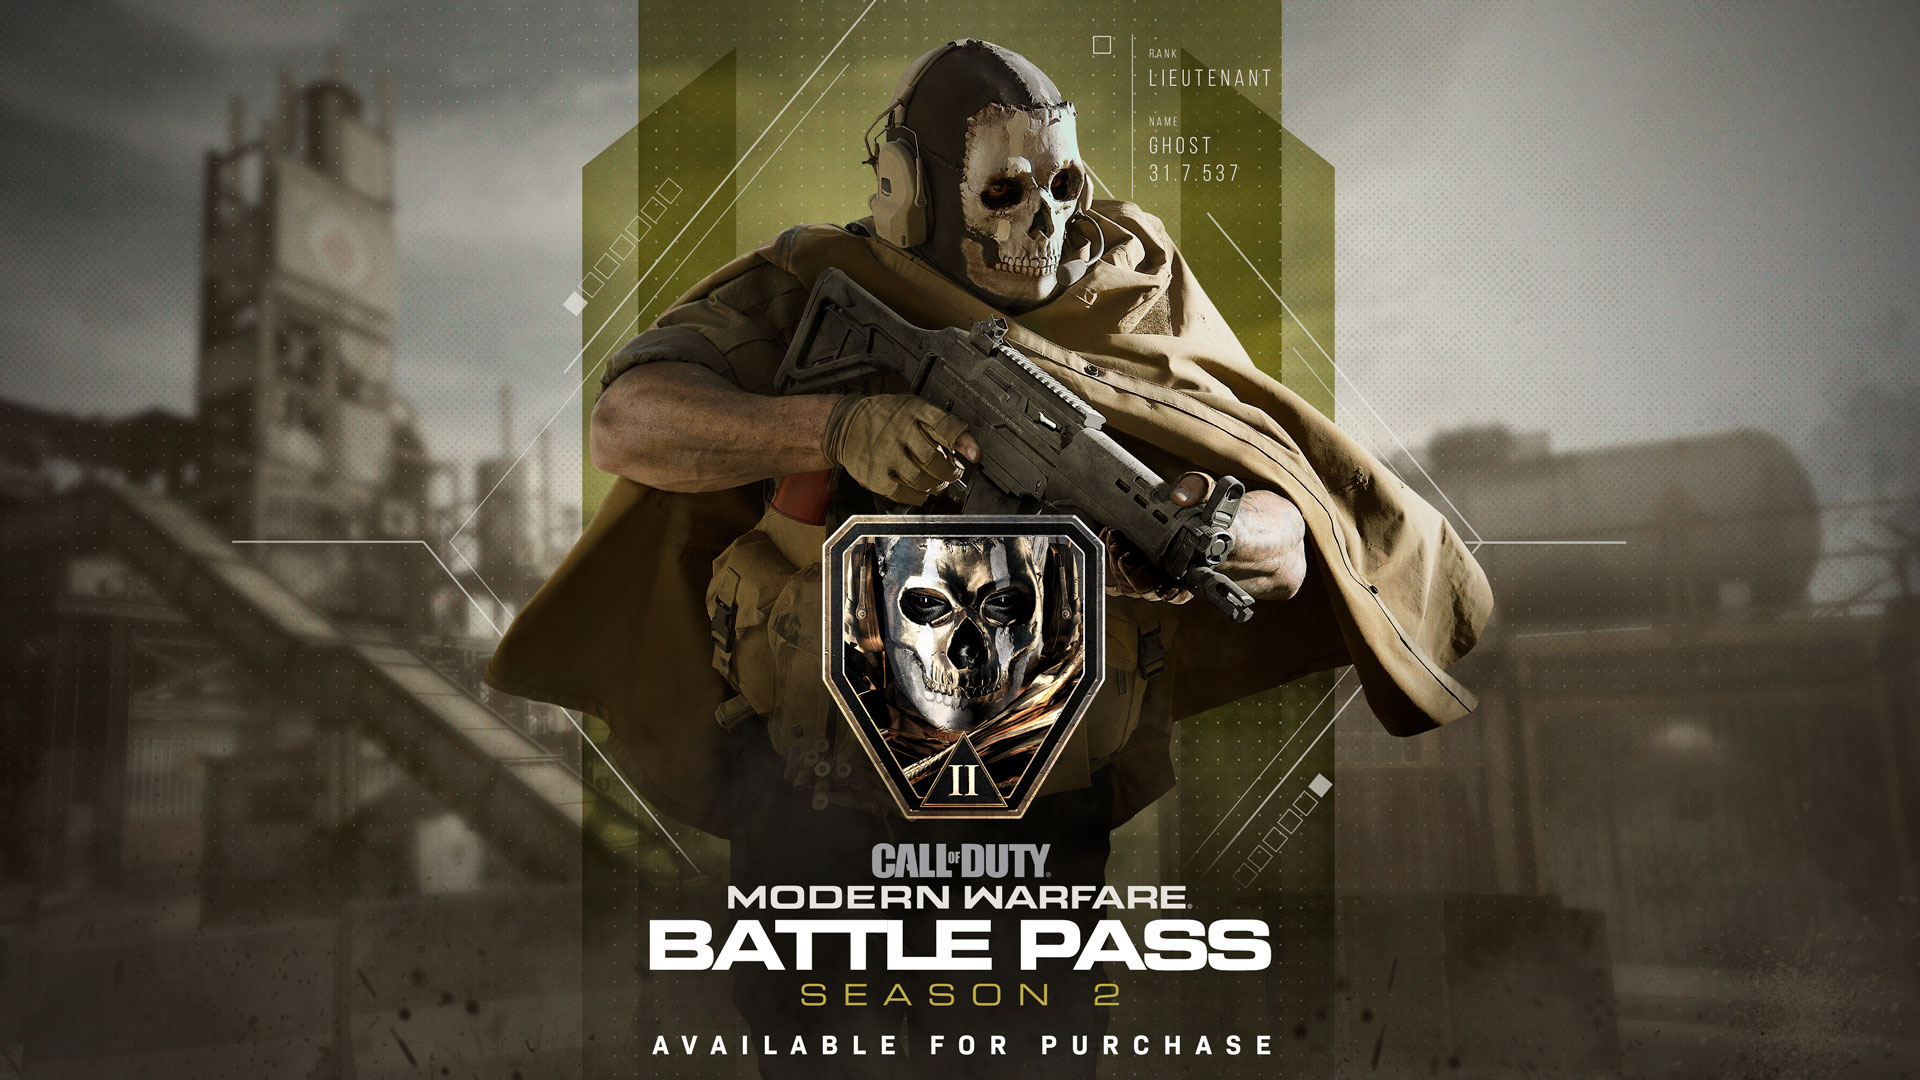 striker 45 battle pass